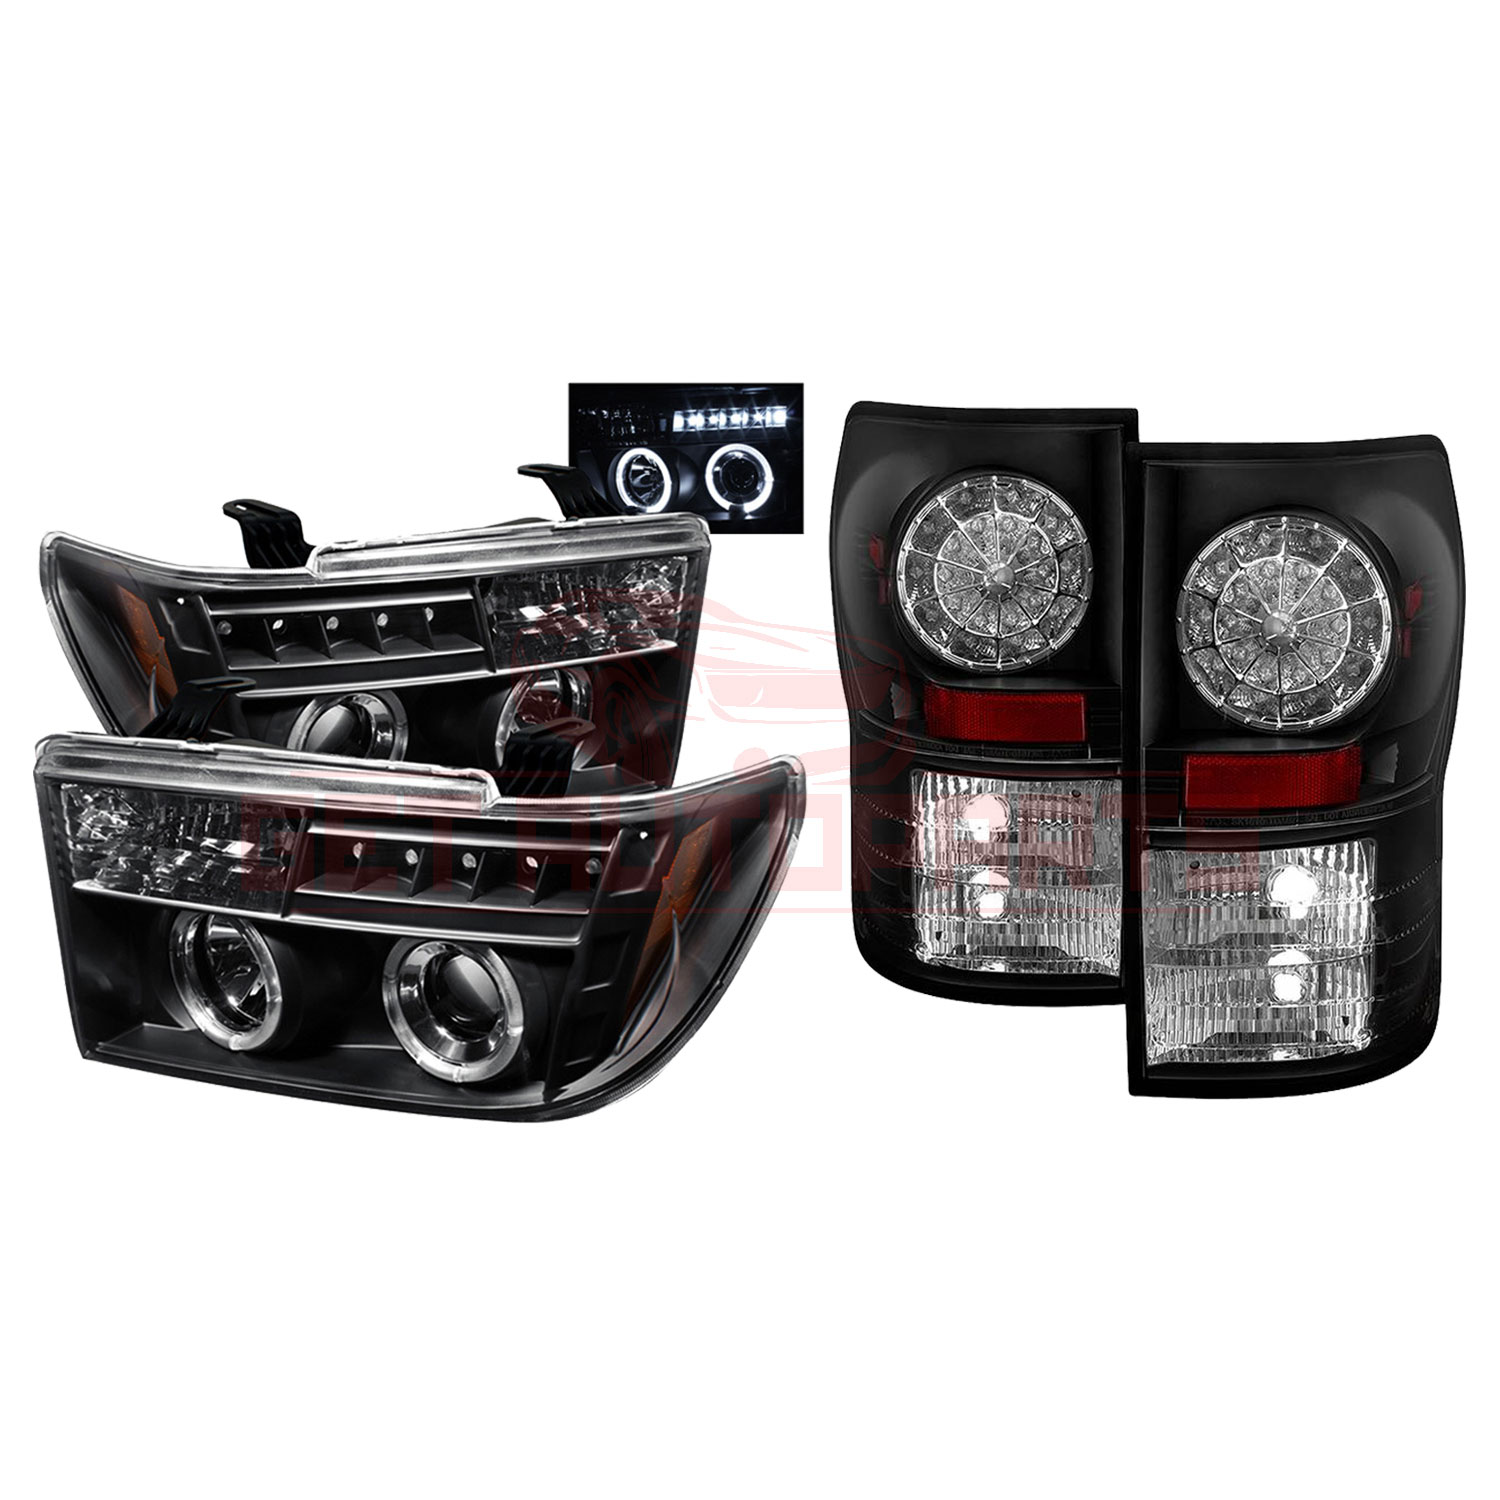 Spyder Halo LED Projector Headlights & LED Tail Lights Black Toyota Tundra 07-13 part in Headlight & Tail Light Covers category